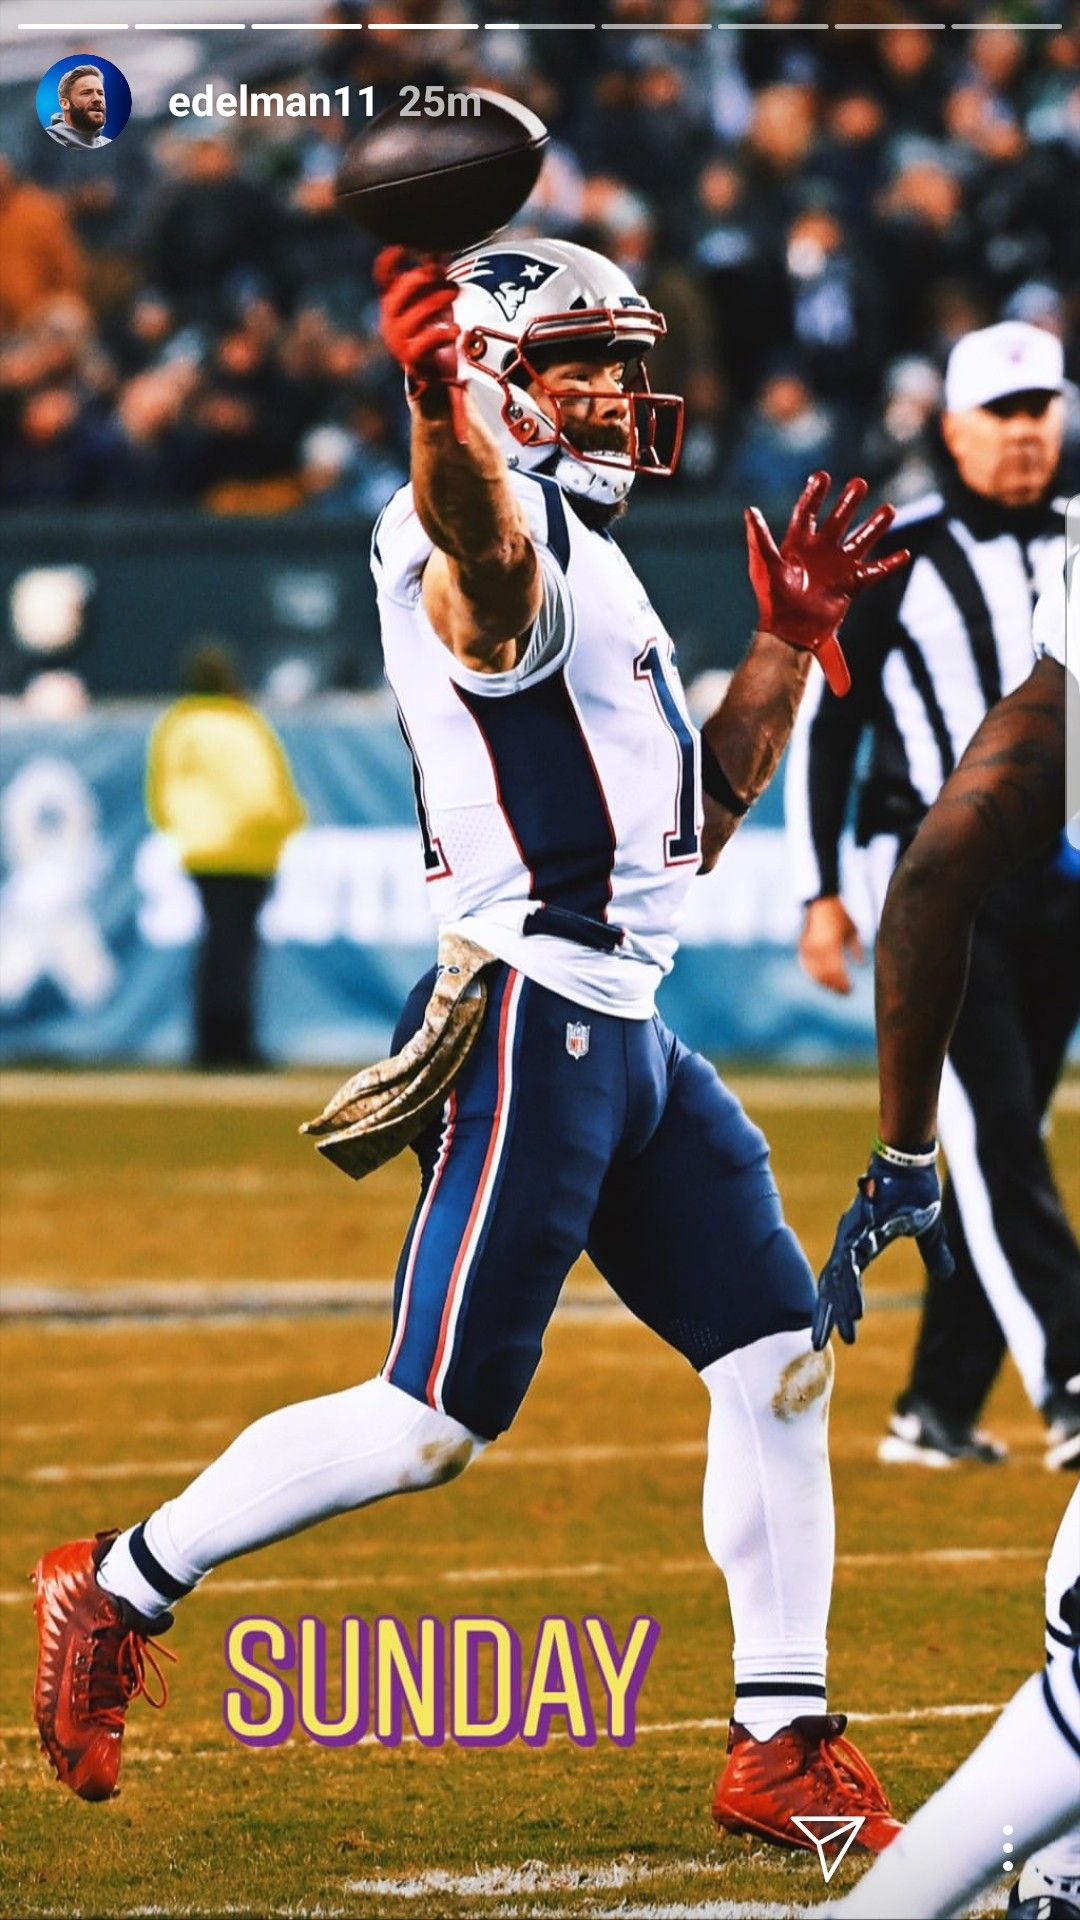 Pin By Lm Huddle On Patriots New England Patriots Football American Football New England Patriots